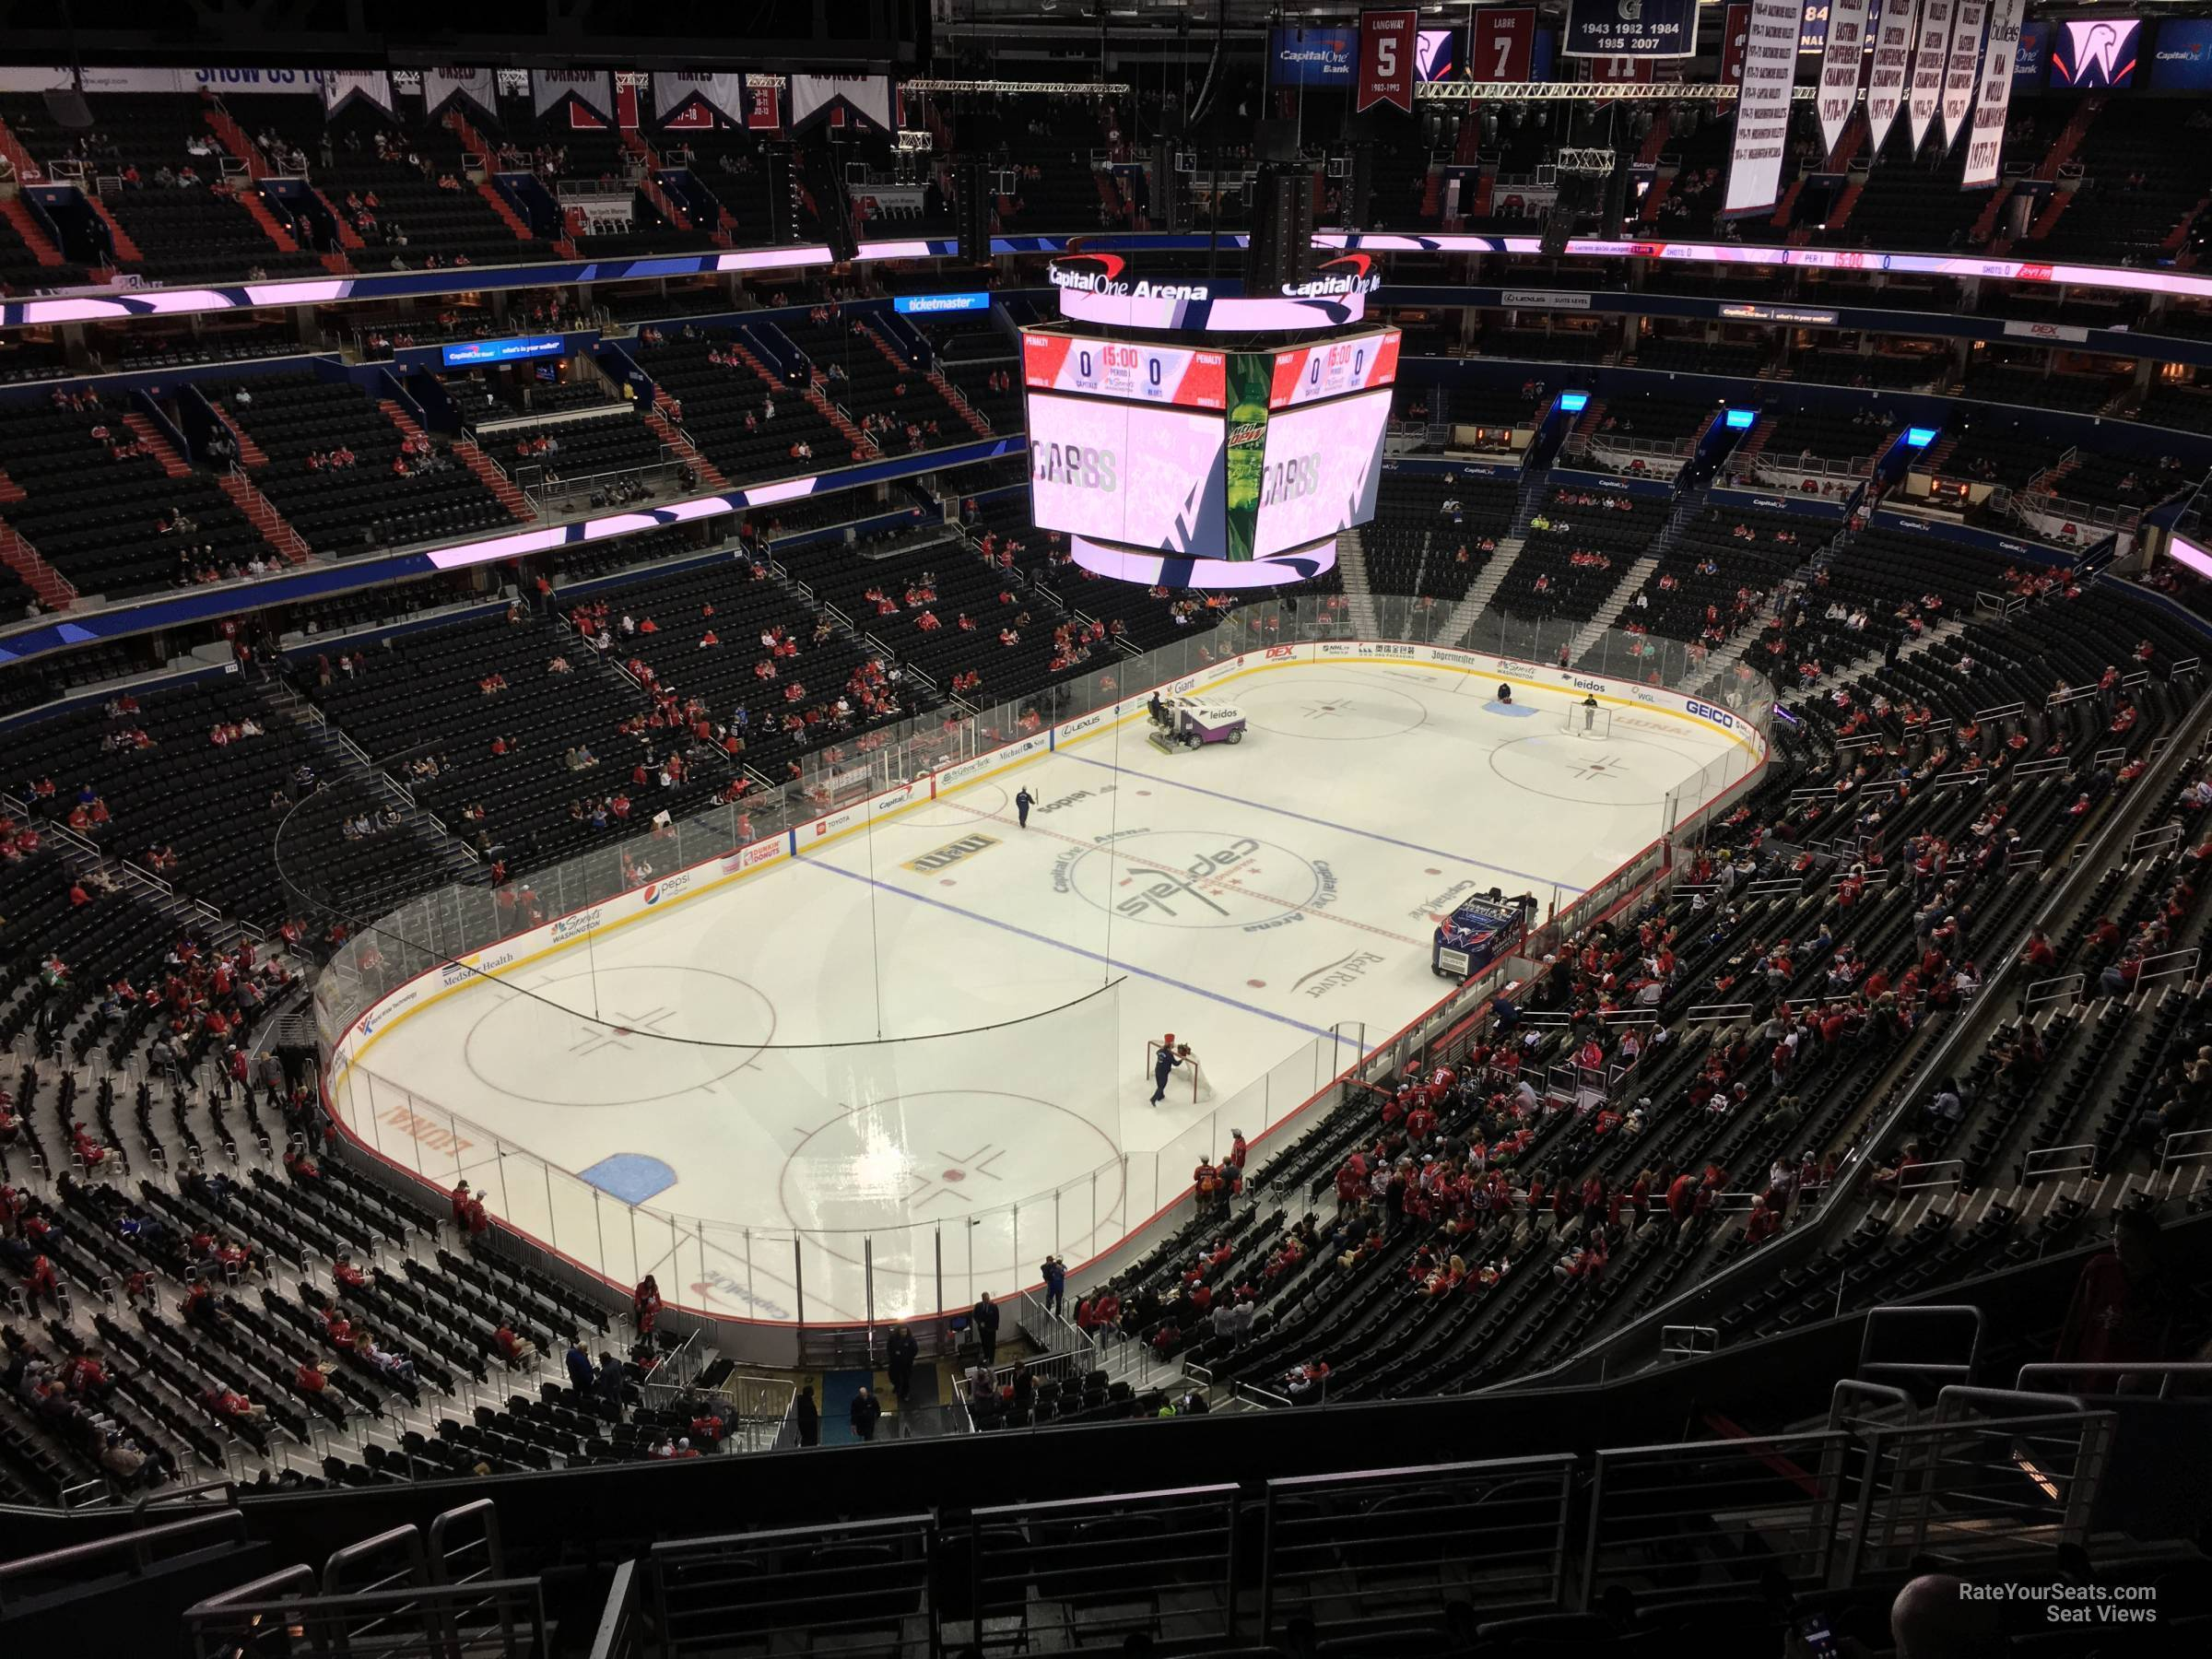 Section 429 seat view